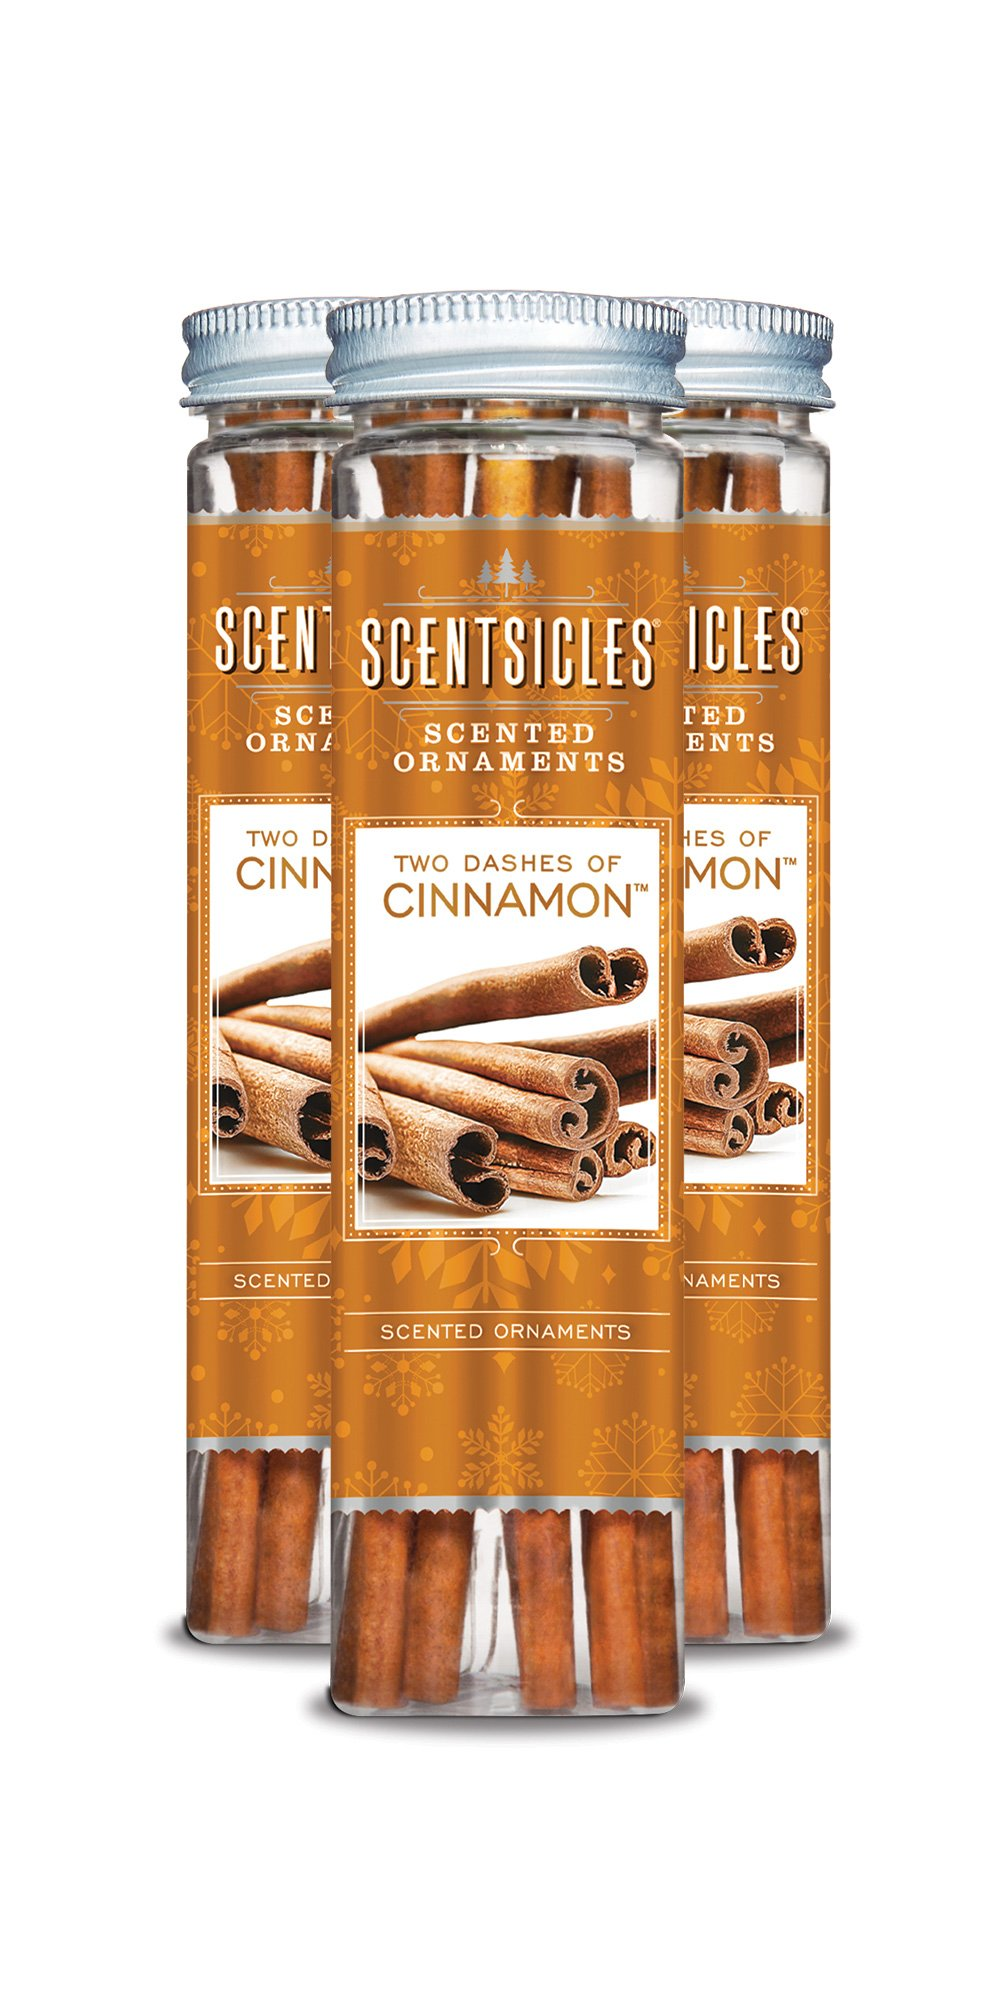 Scentsicles 6 Piece Two Dashes of Cinnamon Bottle, 3 Bottles Per Pack